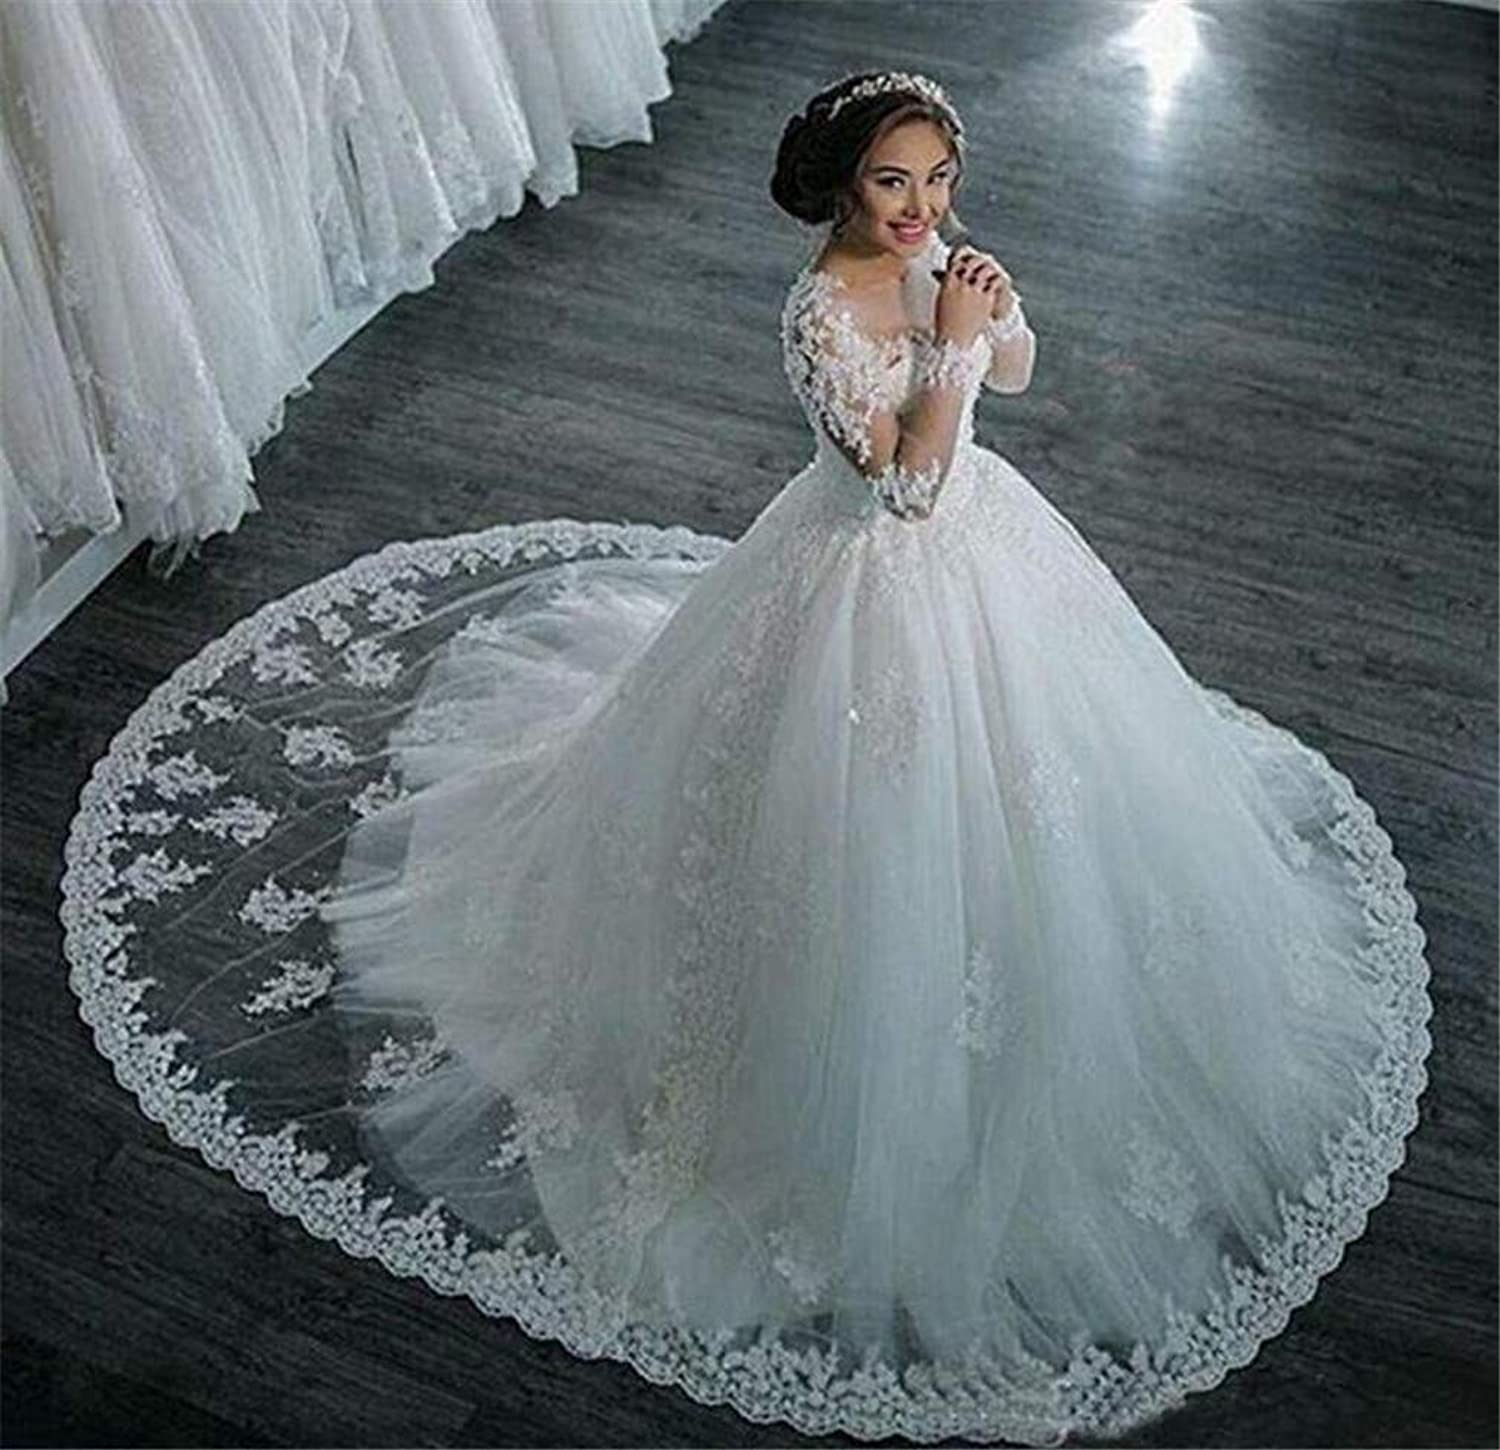 Wedding Drees Bridal Gowns Woman Floor White Elegant Party Sexy Sleeveless Lace Bride Forma